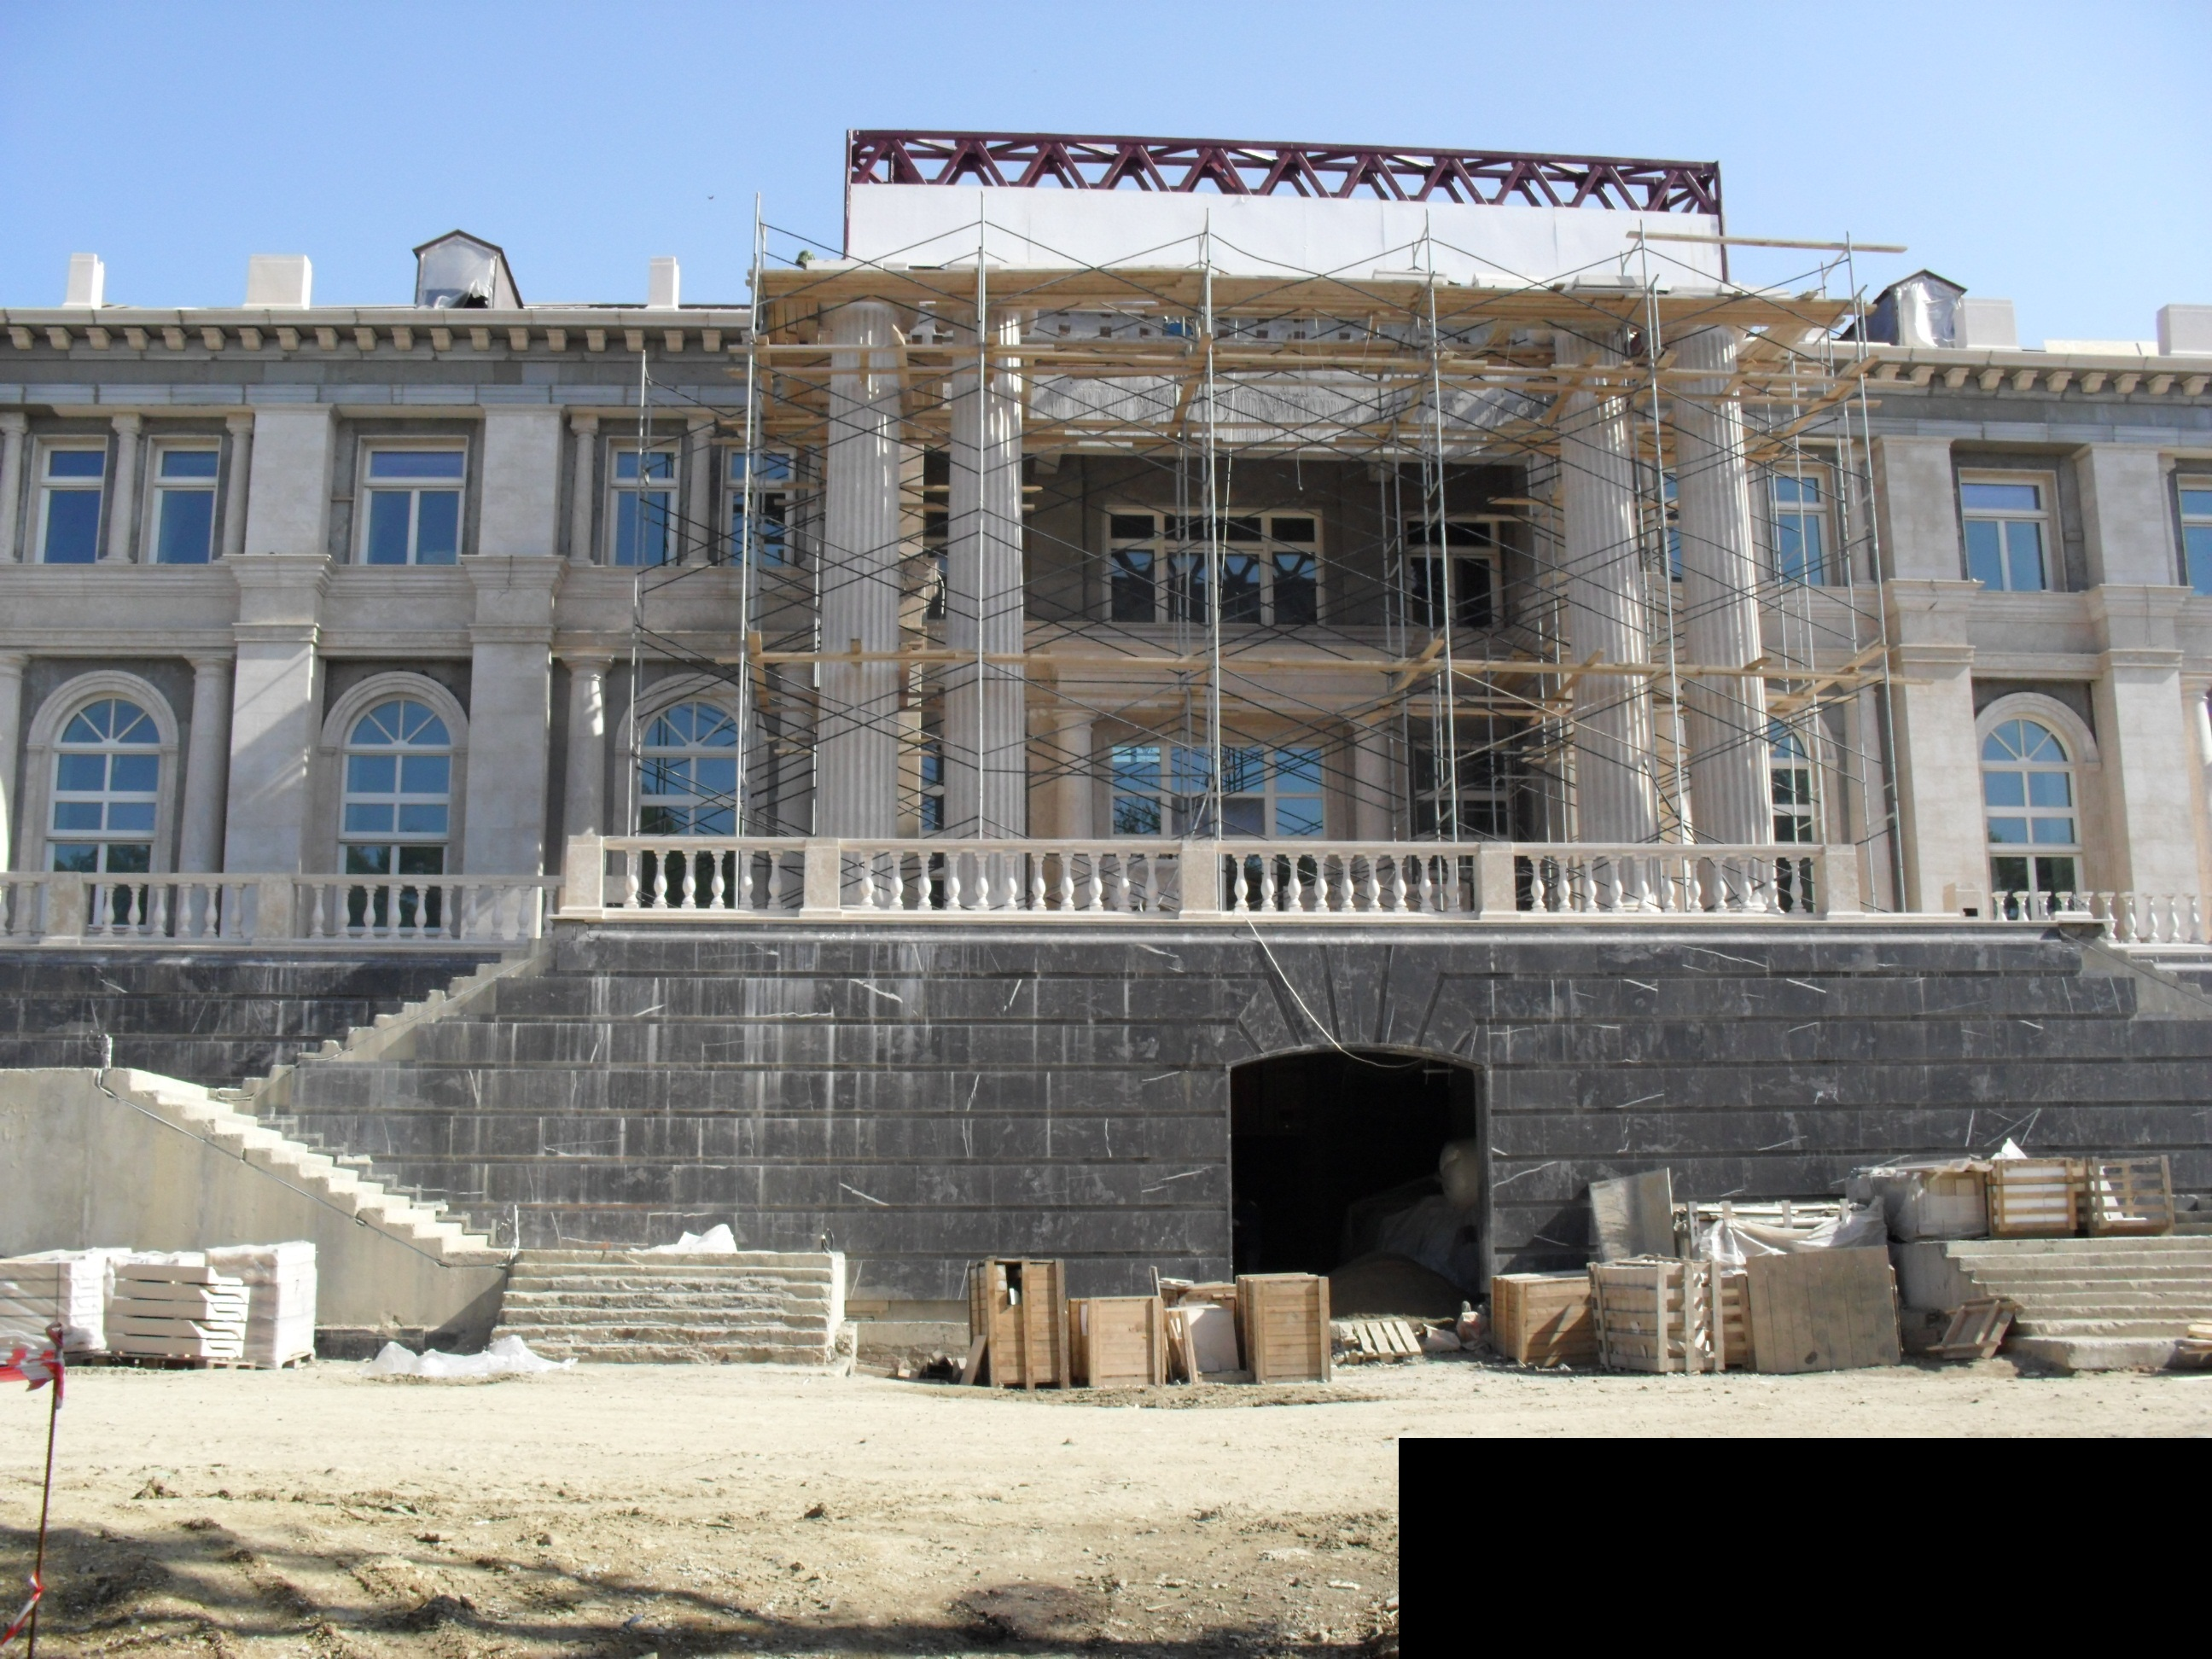 File:Putin palace construction.jpg